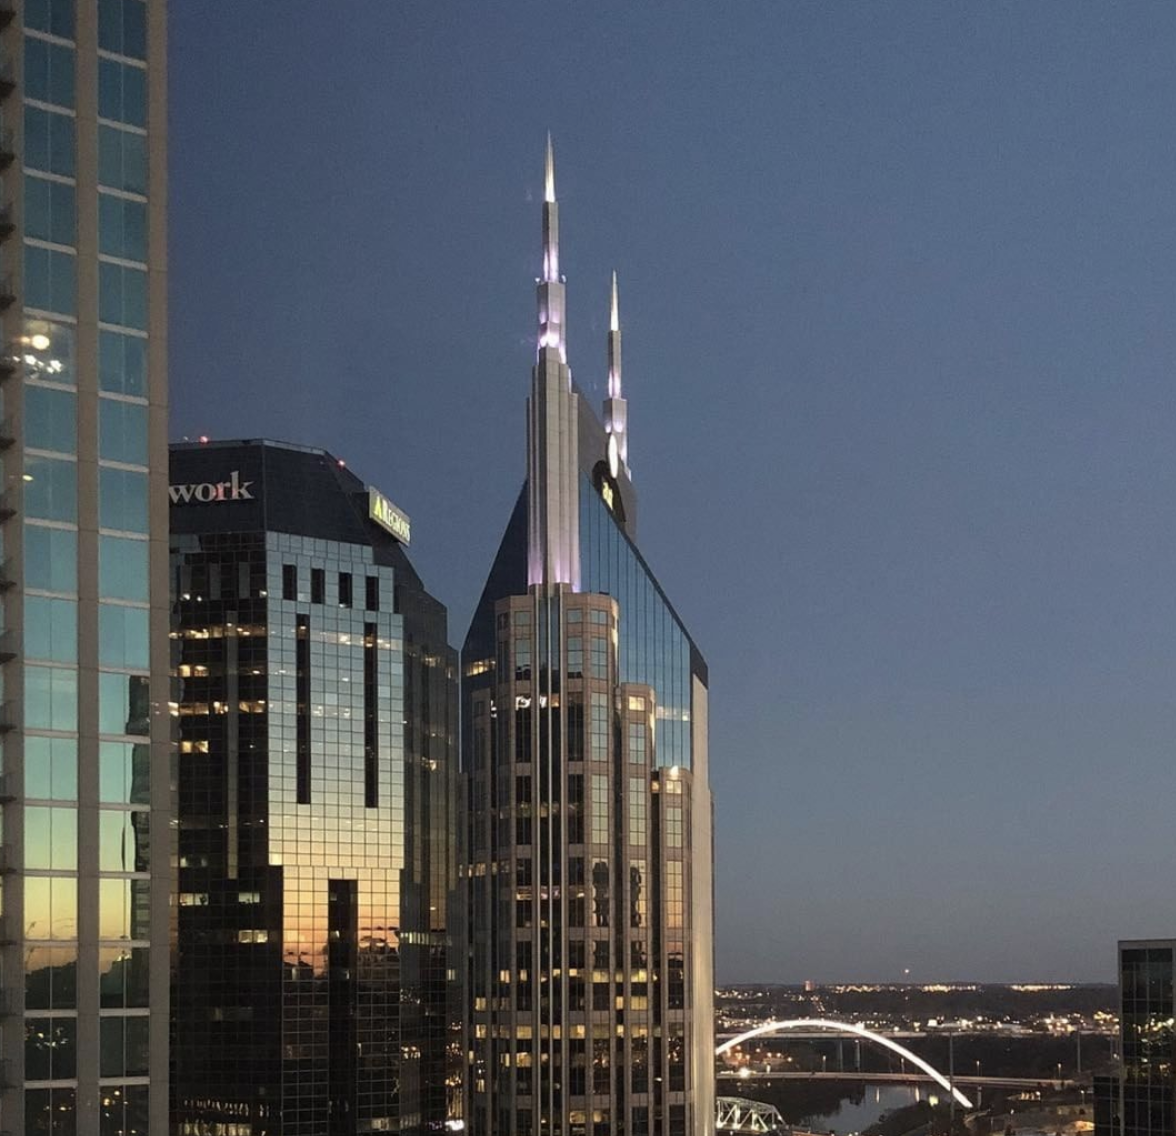 """With room views like this, you'll always have the chance to wish Nashville a good night."" @omninashville instagram"